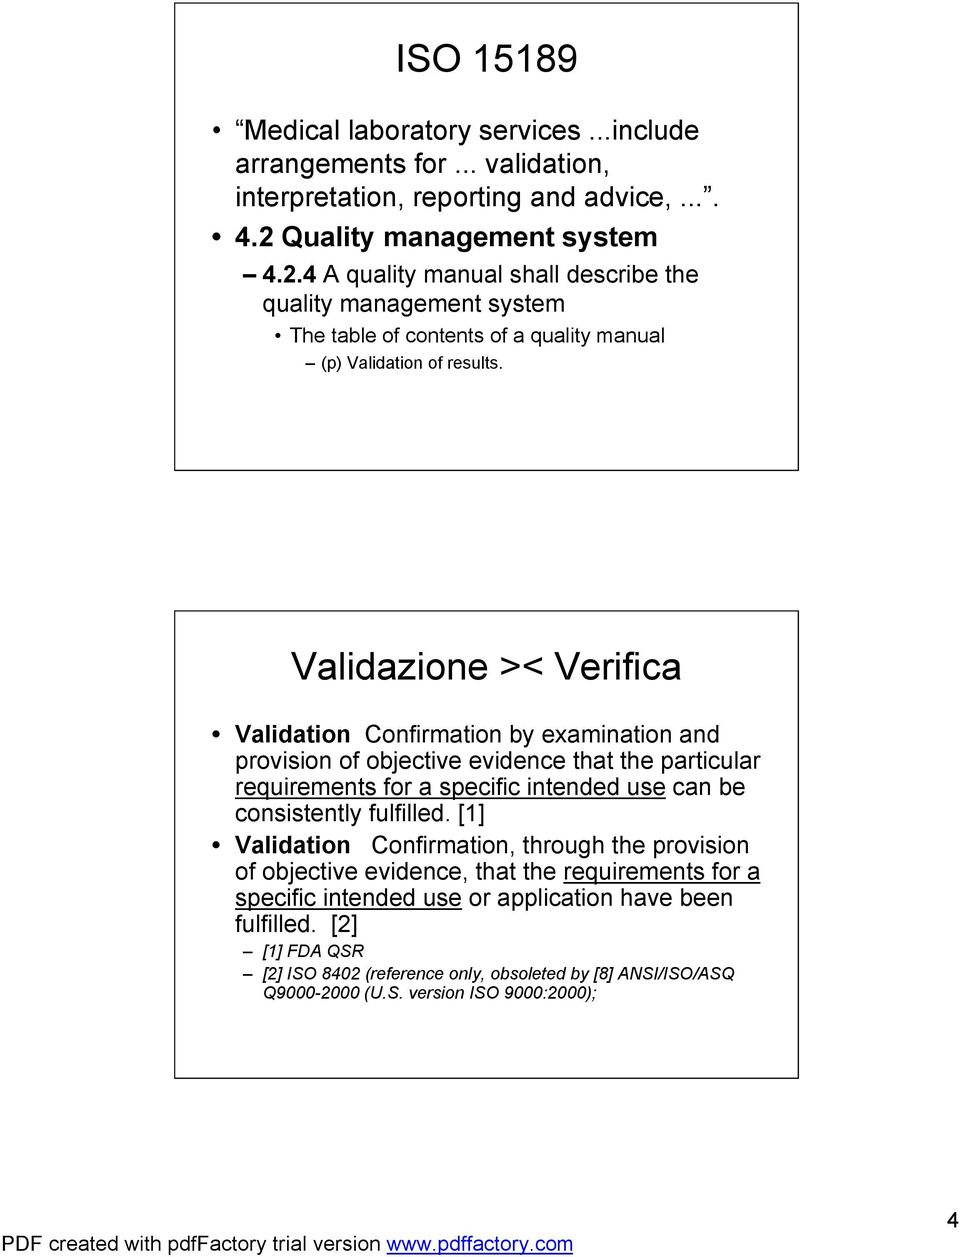 Validazione >< Verifica Validation Confirmation by examination and provision of objective evidence that the particular requirements for a specific intended use can be consistently fulfilled.